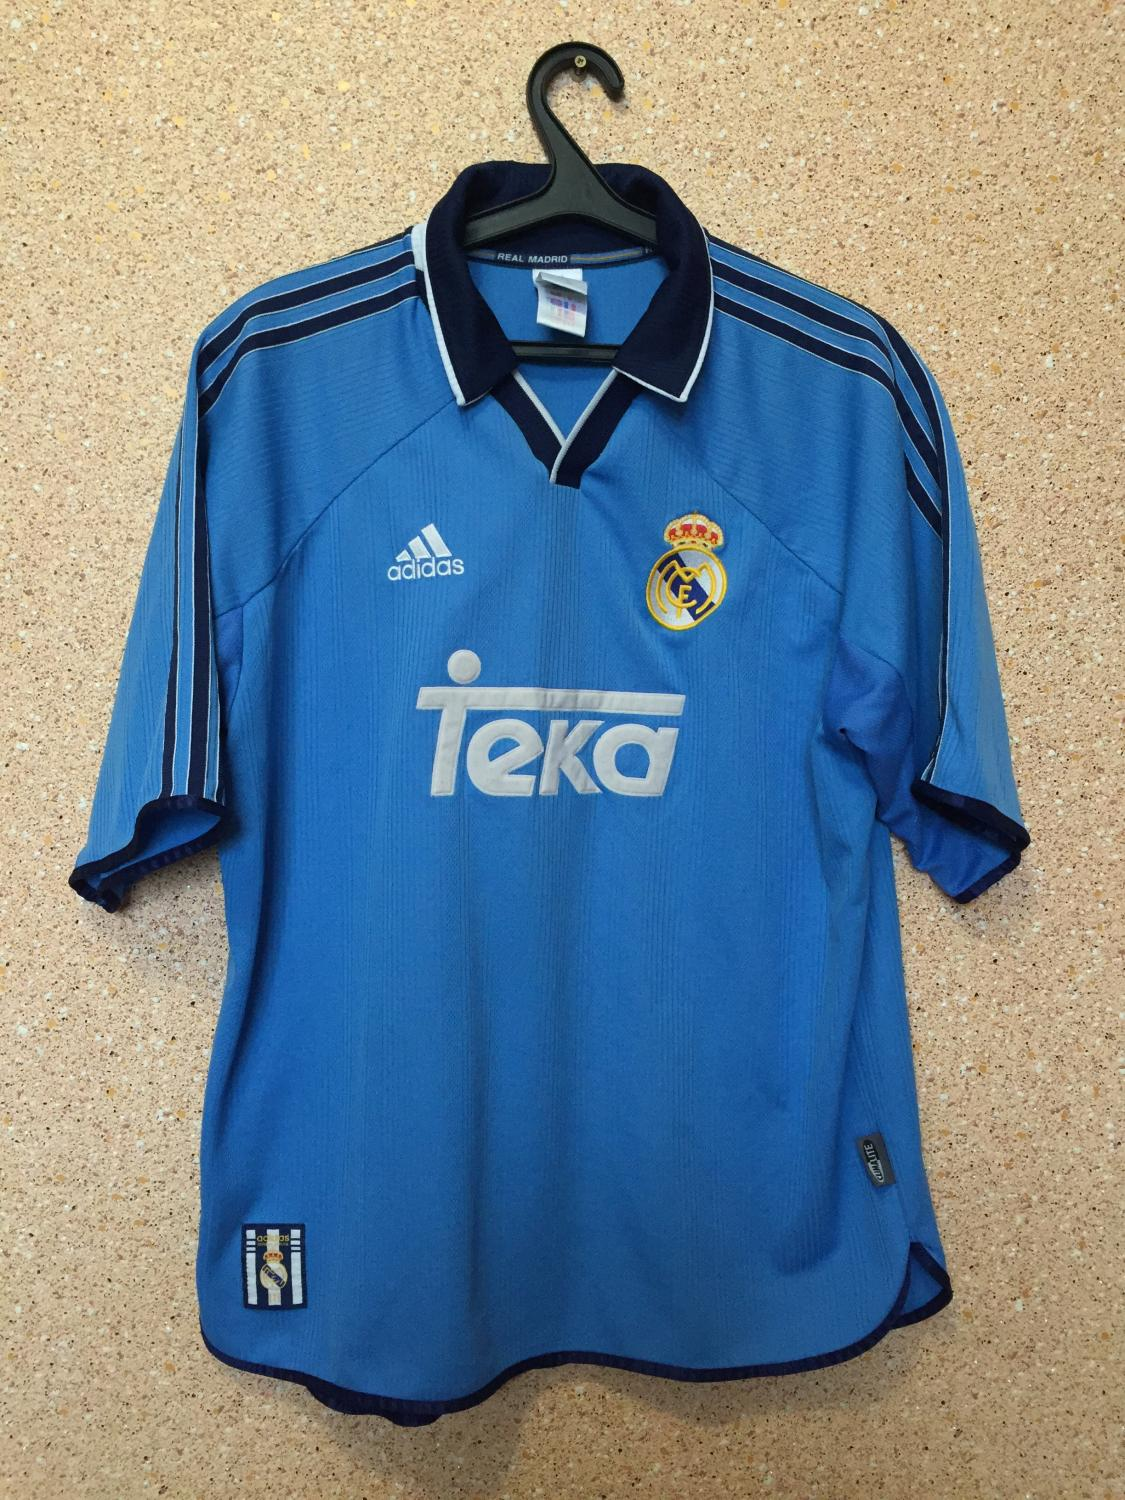 59848e613 Real Madrid Third Maillot de foot 1999 - 2000. Sponsored by Teka